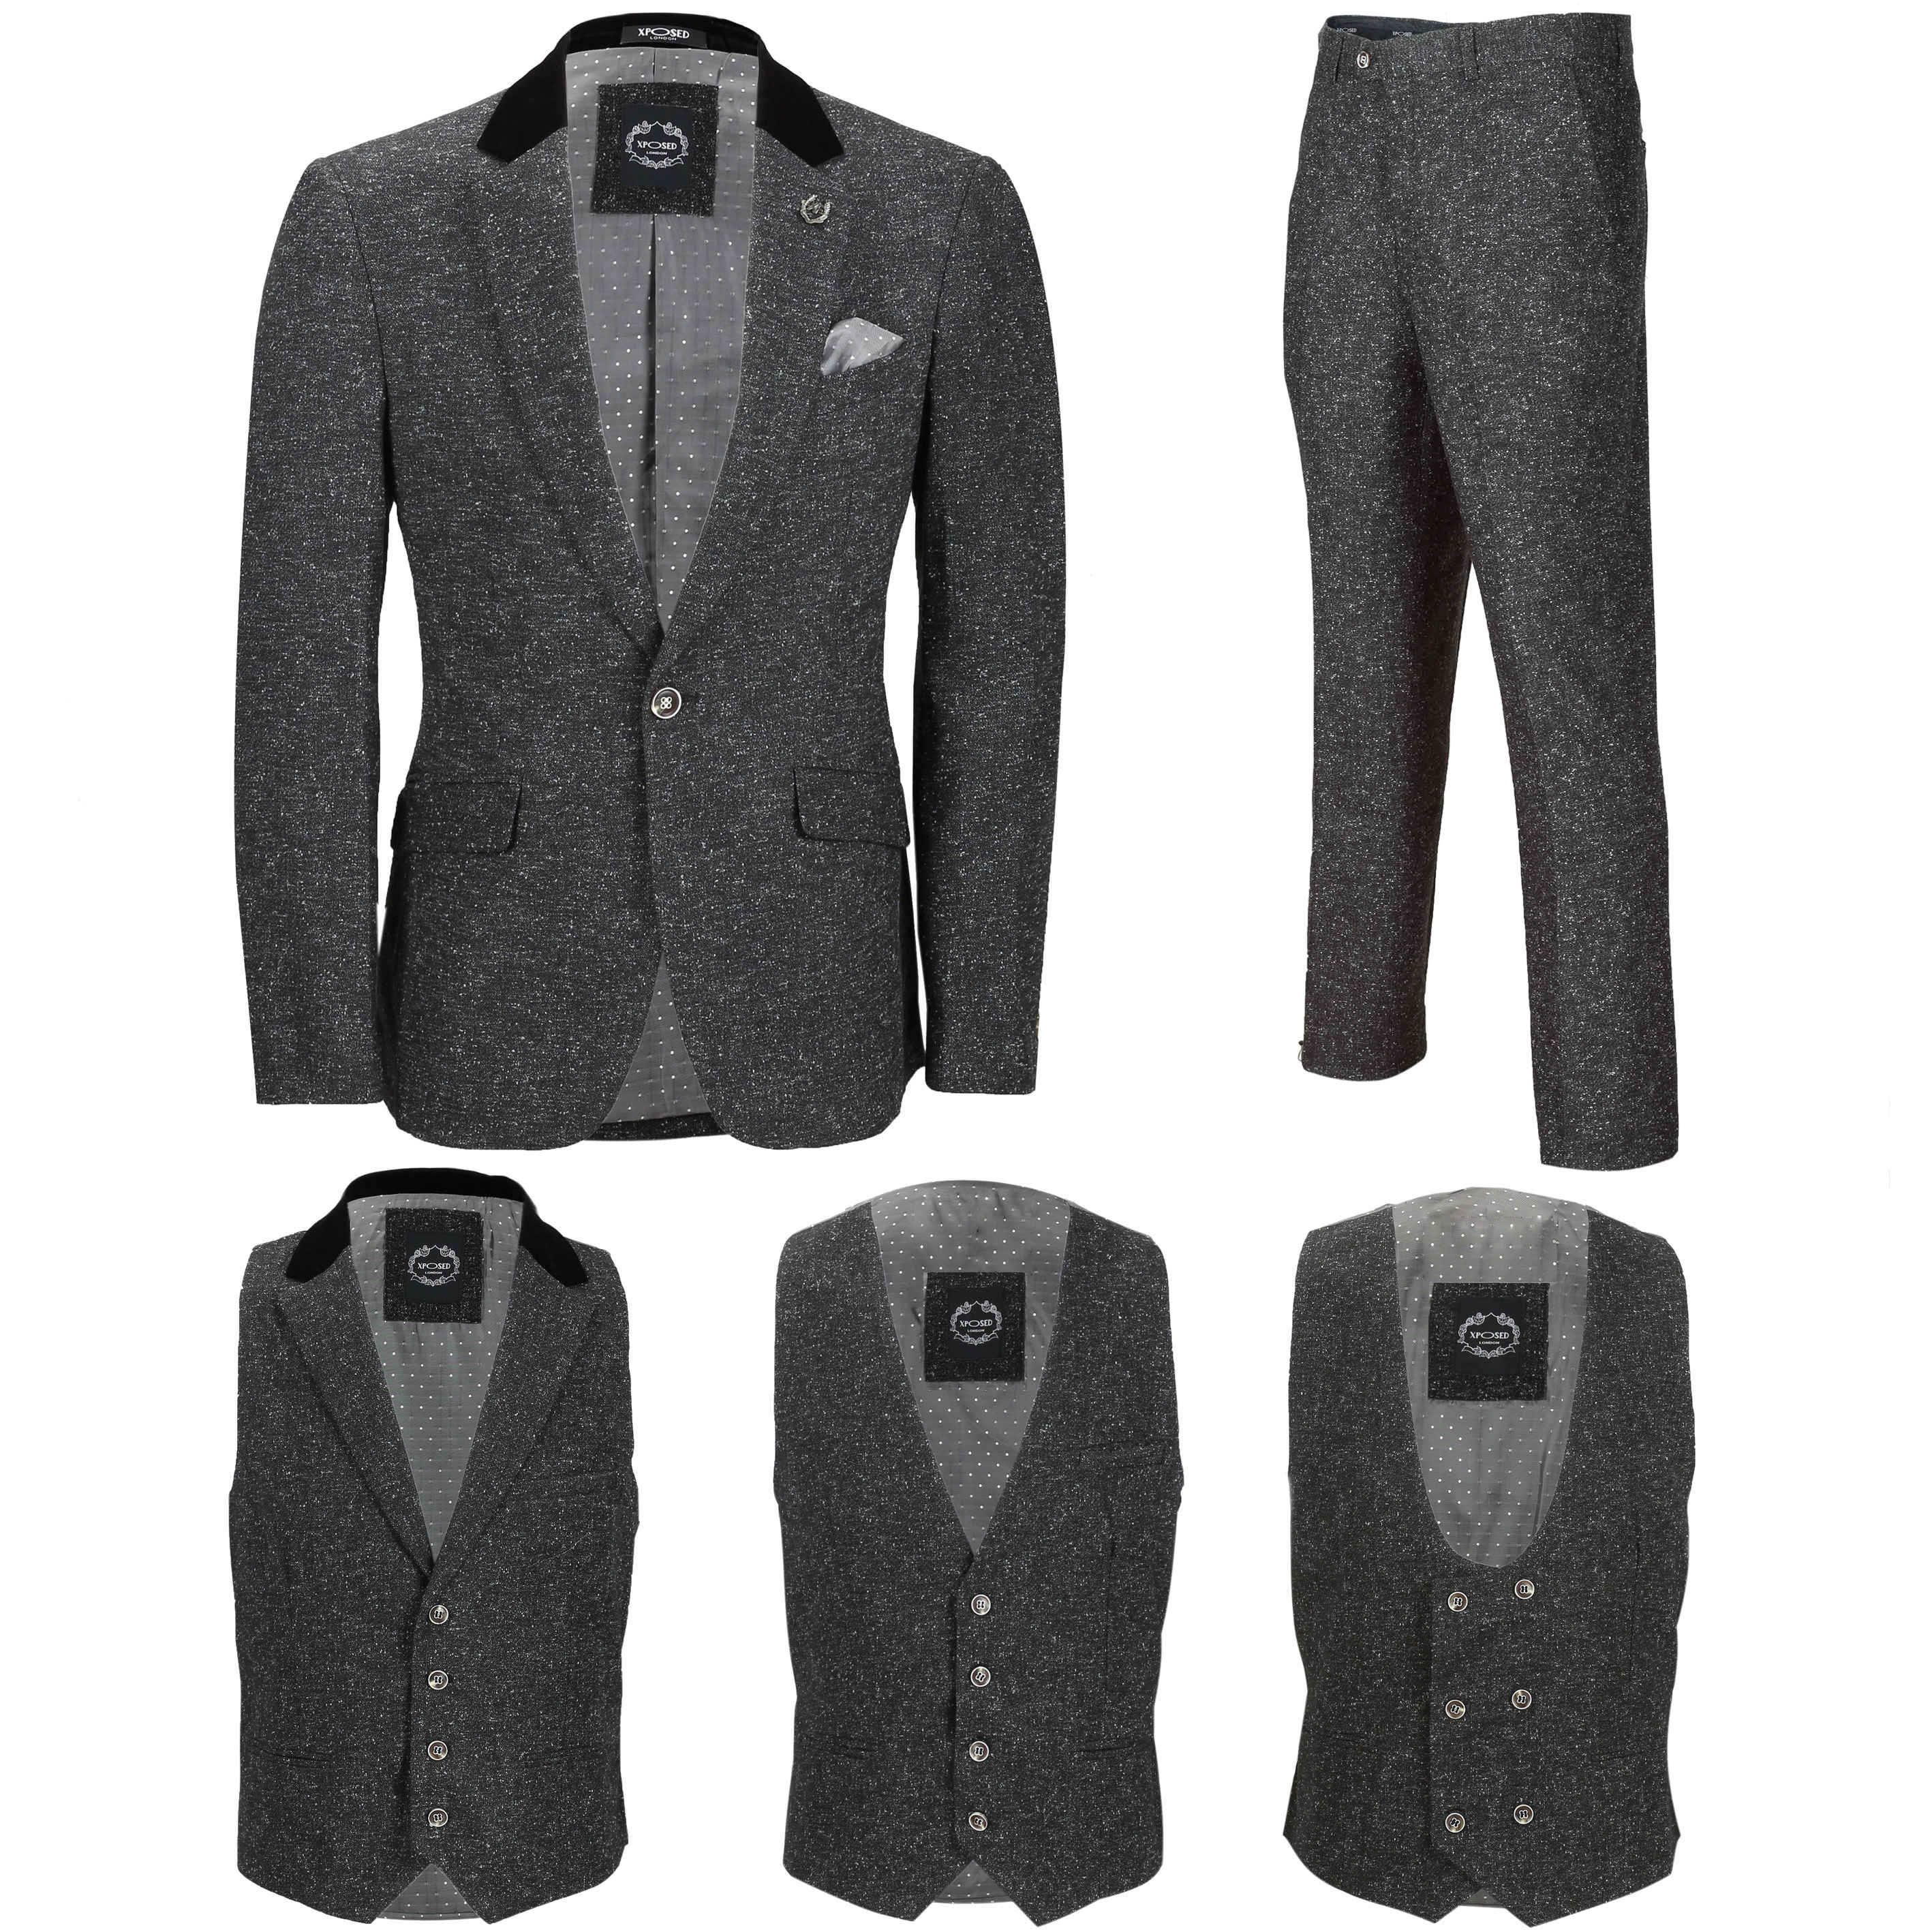 Mens Grey Tweed Wool 3 Piece Suit Sold Separately Retro Blazer